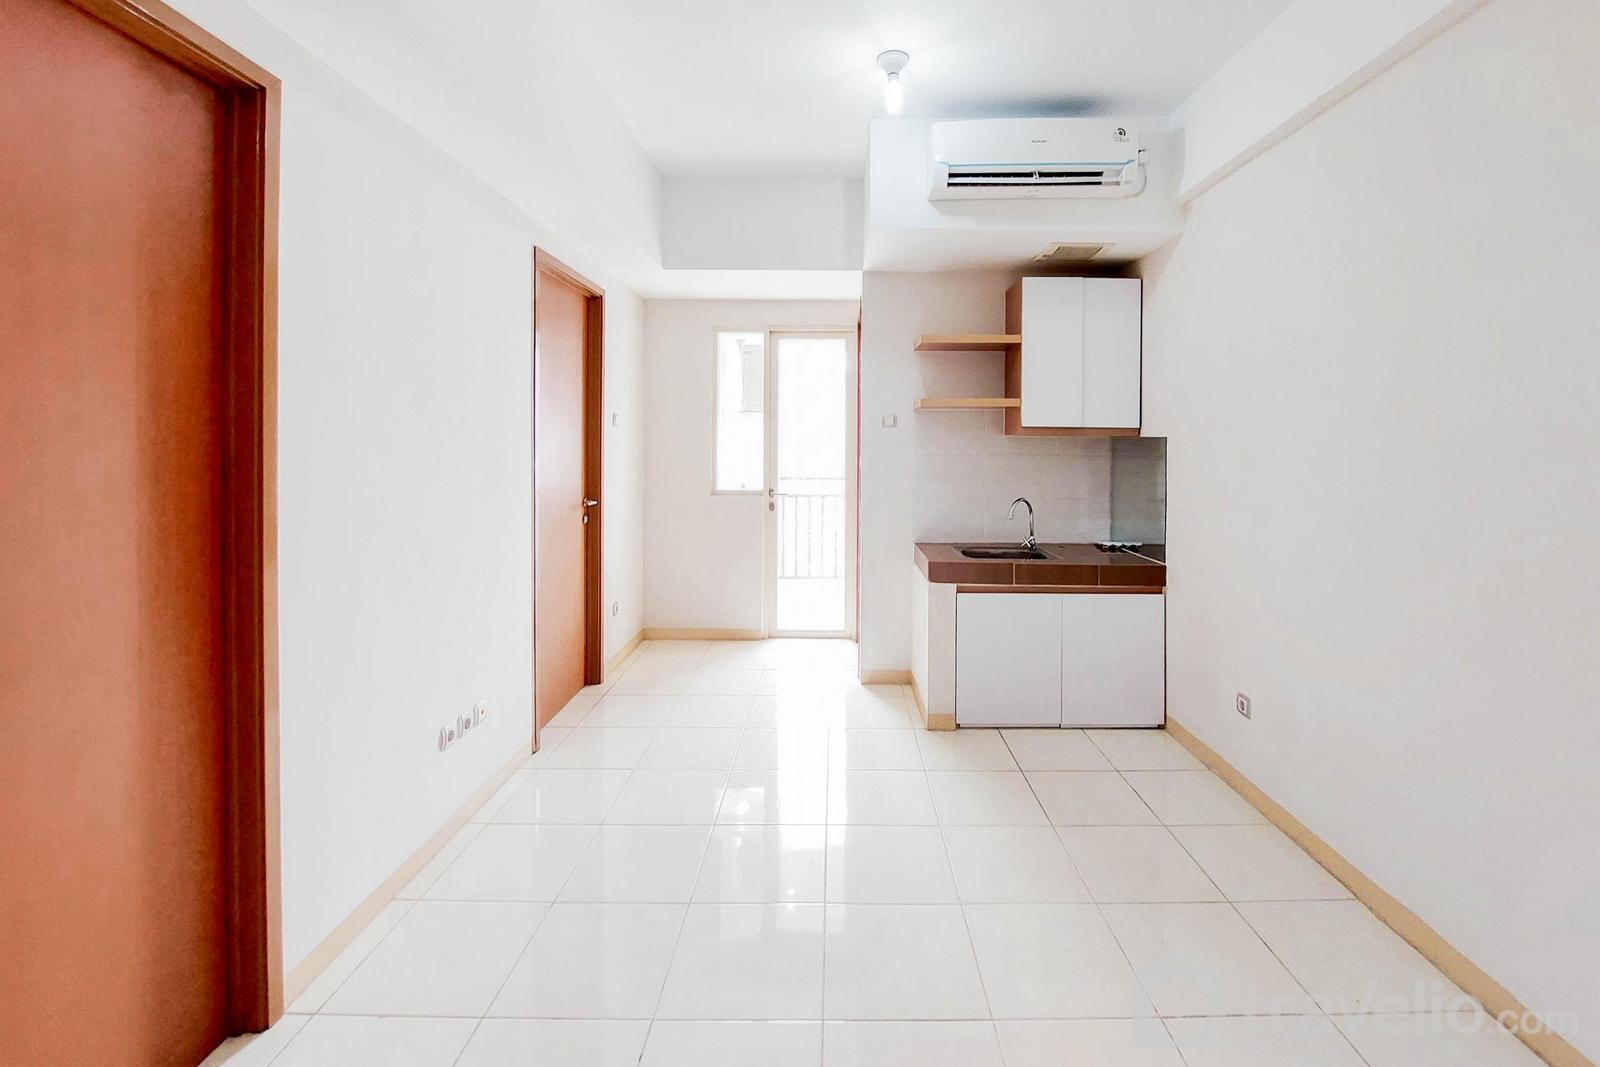 Apartemen Green Lake View - Unfurnished 2BR with AC Green Lake View Ciputat Apartment By Travelio